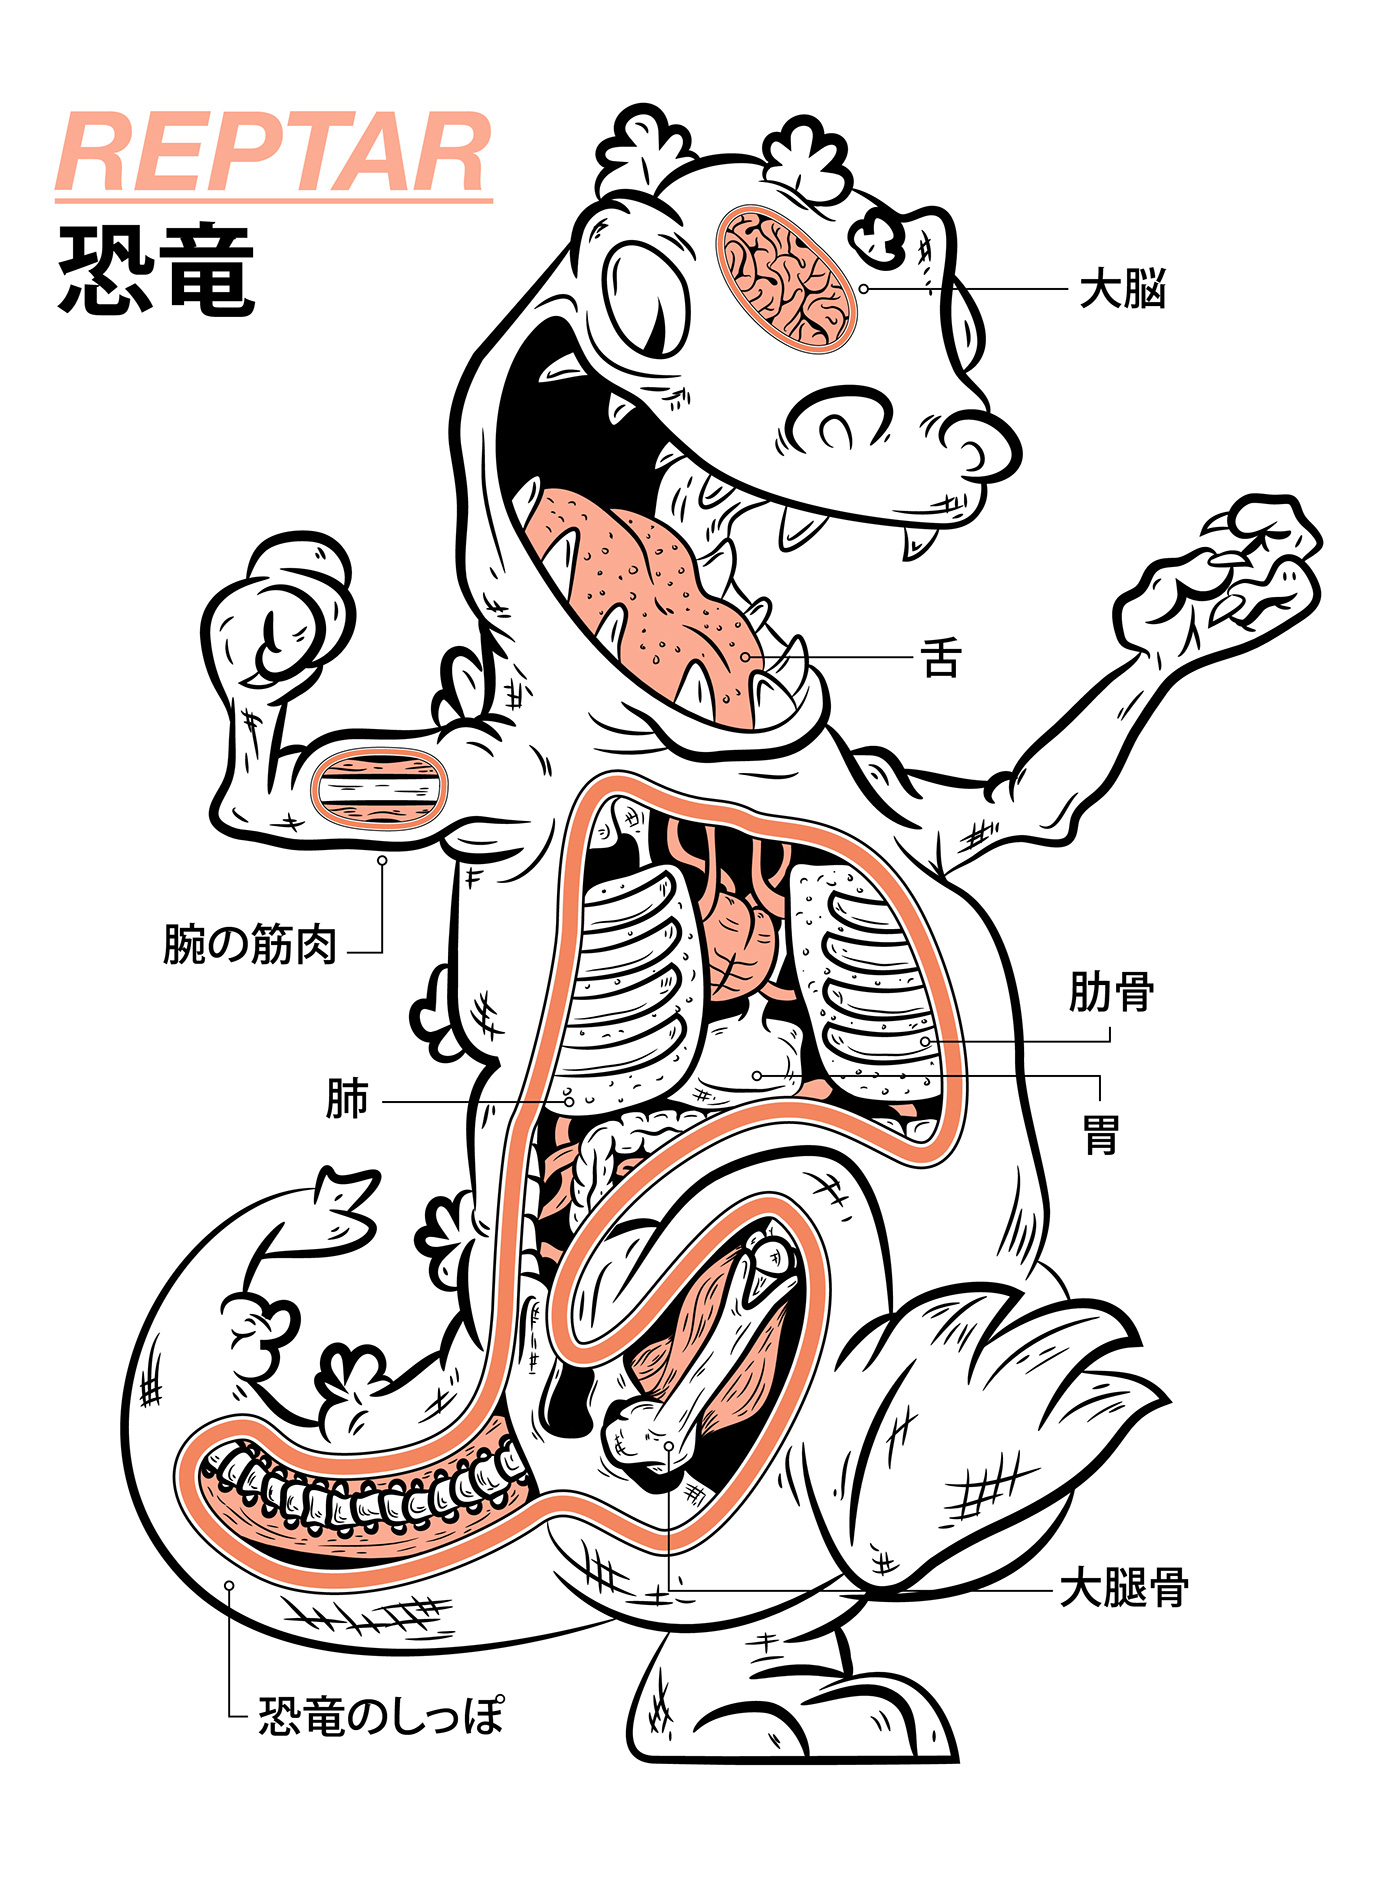 Character Design Job London : Reptar anatomy on behance